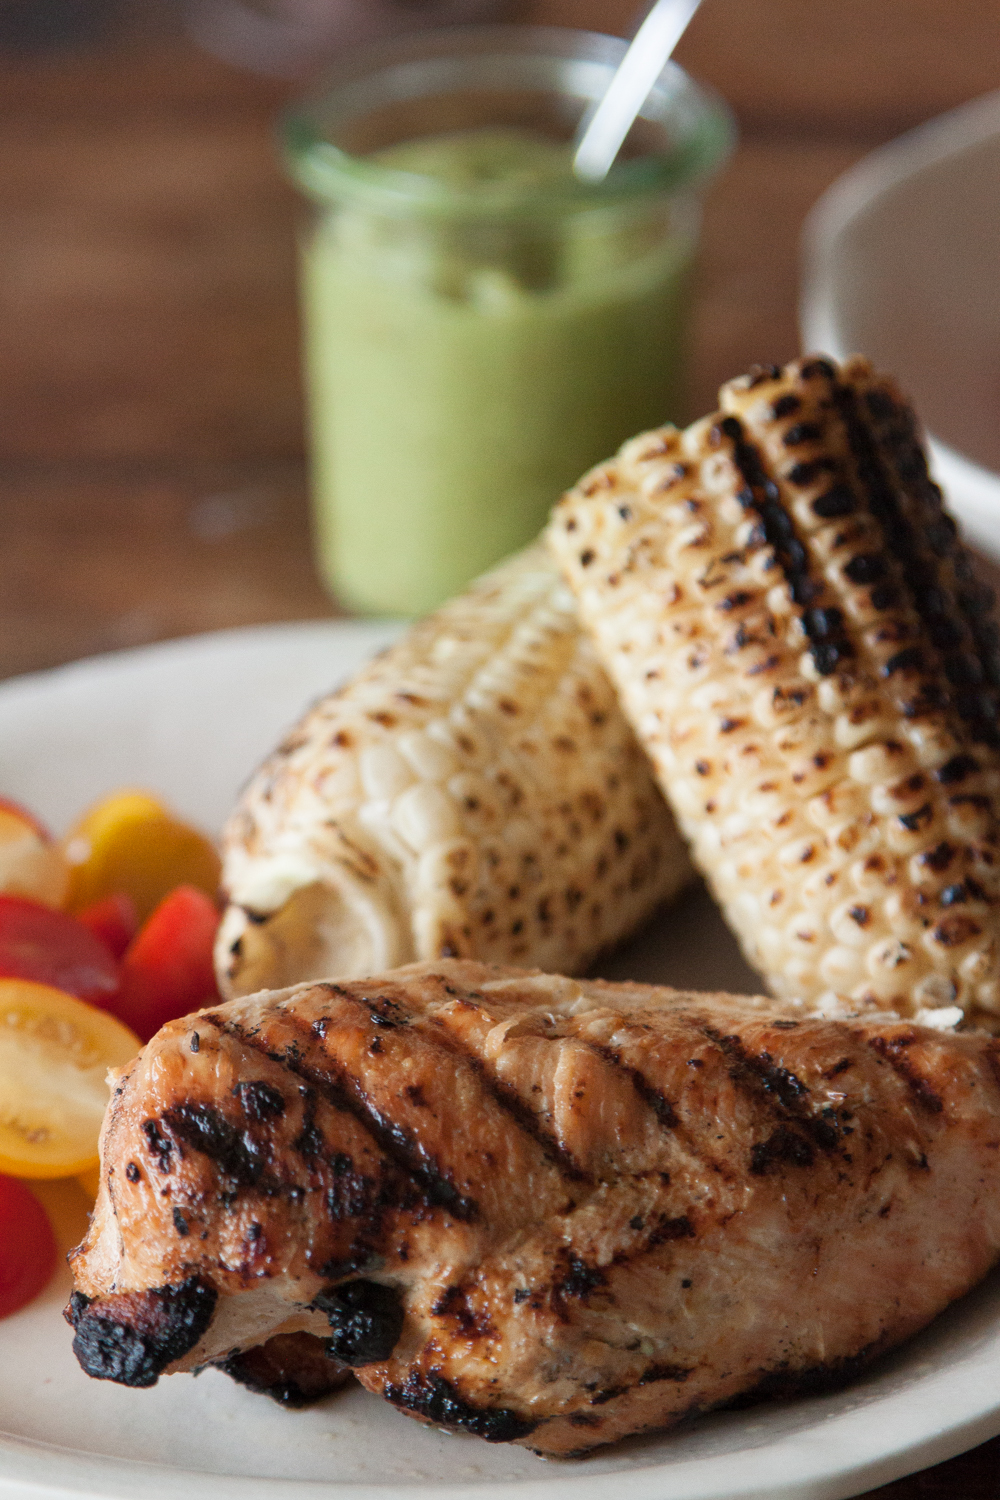 Grilled Chicken with a Tomatillo Avocado Sauce